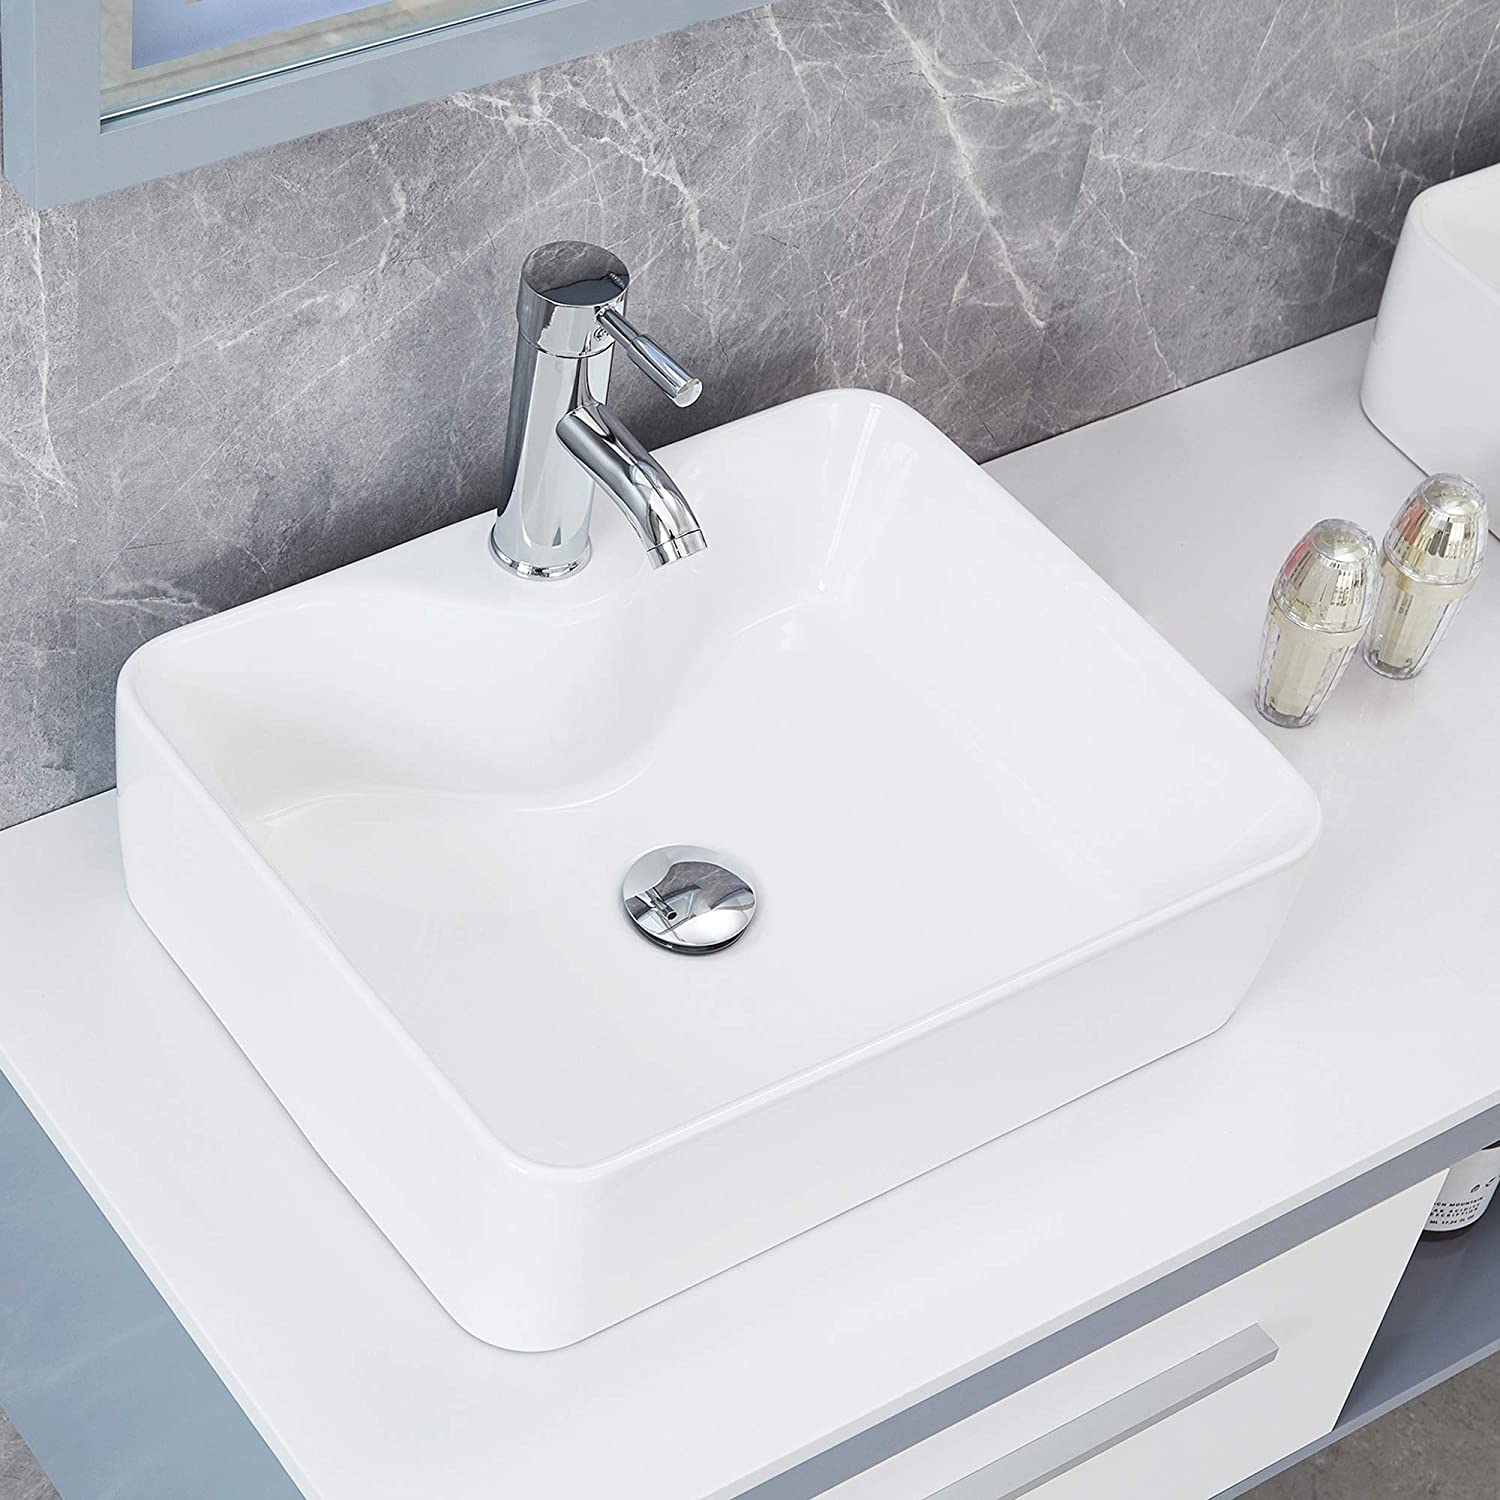 Above Counter Vanity Bowl Vessel Sink With Pop Up Drain Stainless Steel Faucet Combo For Lavatory Cabinet 19x14 6x5 1 Inch Bathroom Porcelain White Rectangle Ceramic Vessel Sink Kitchen Bath Fixtures Tools